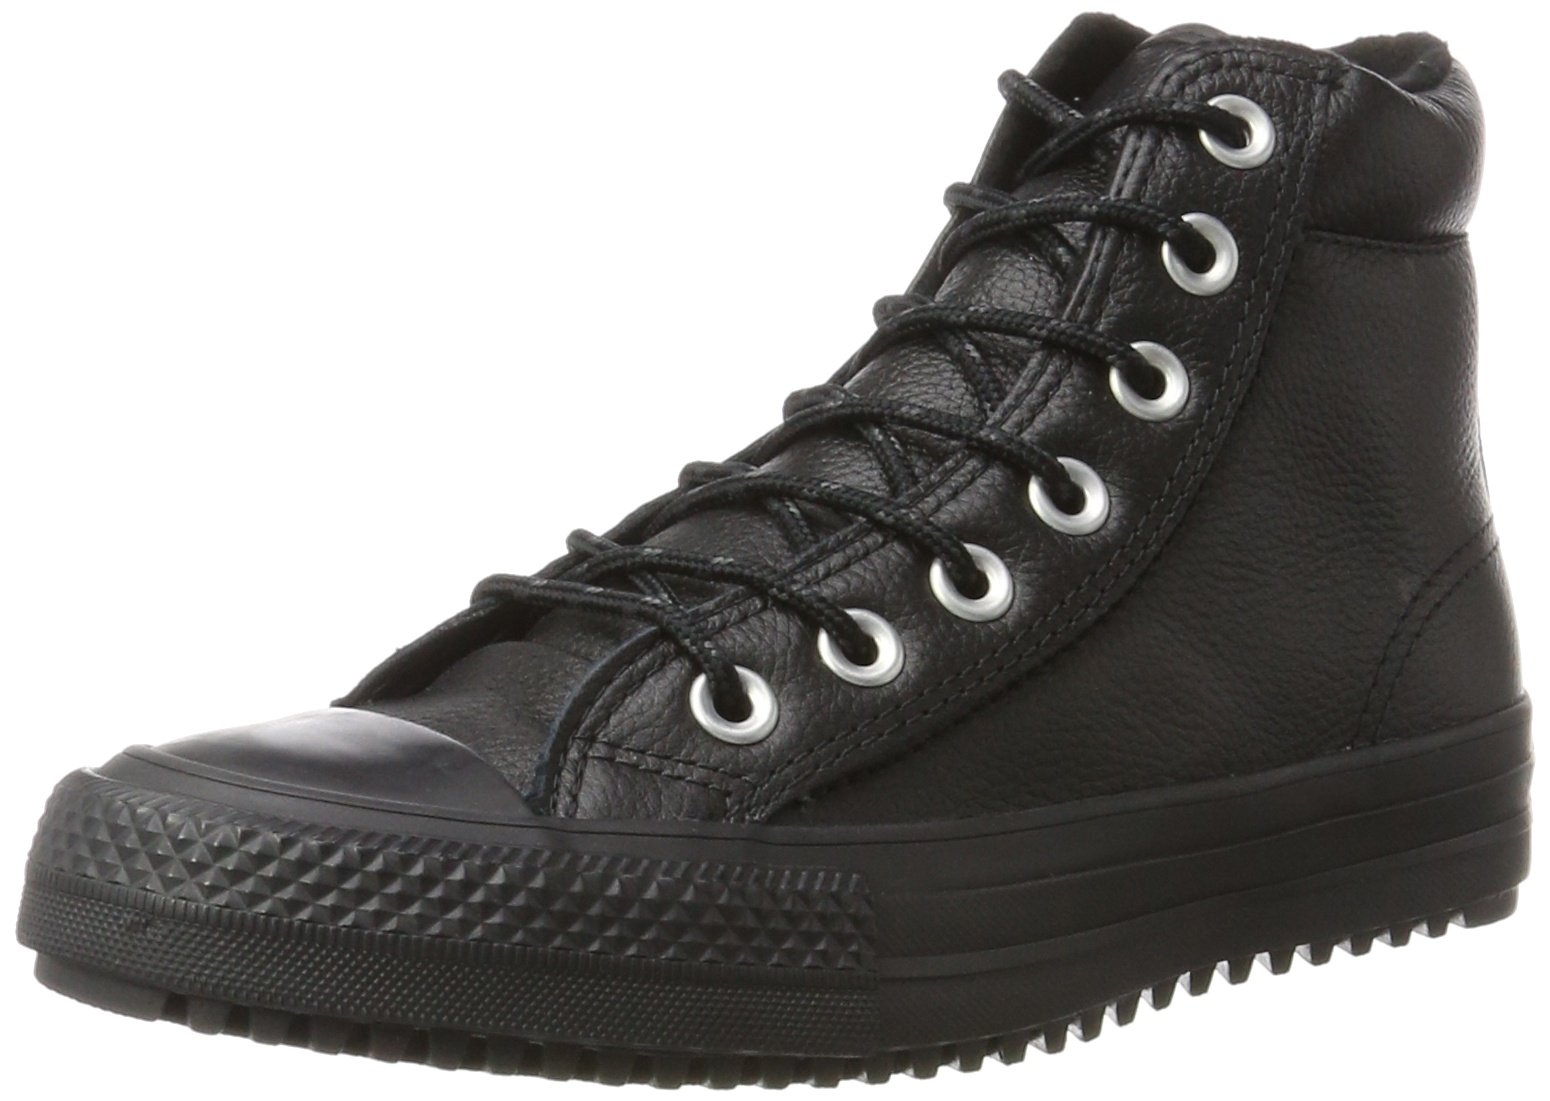 Converse Unisex Chuck Taylor All Star Boot PC, Black/Black/Black, 3.5